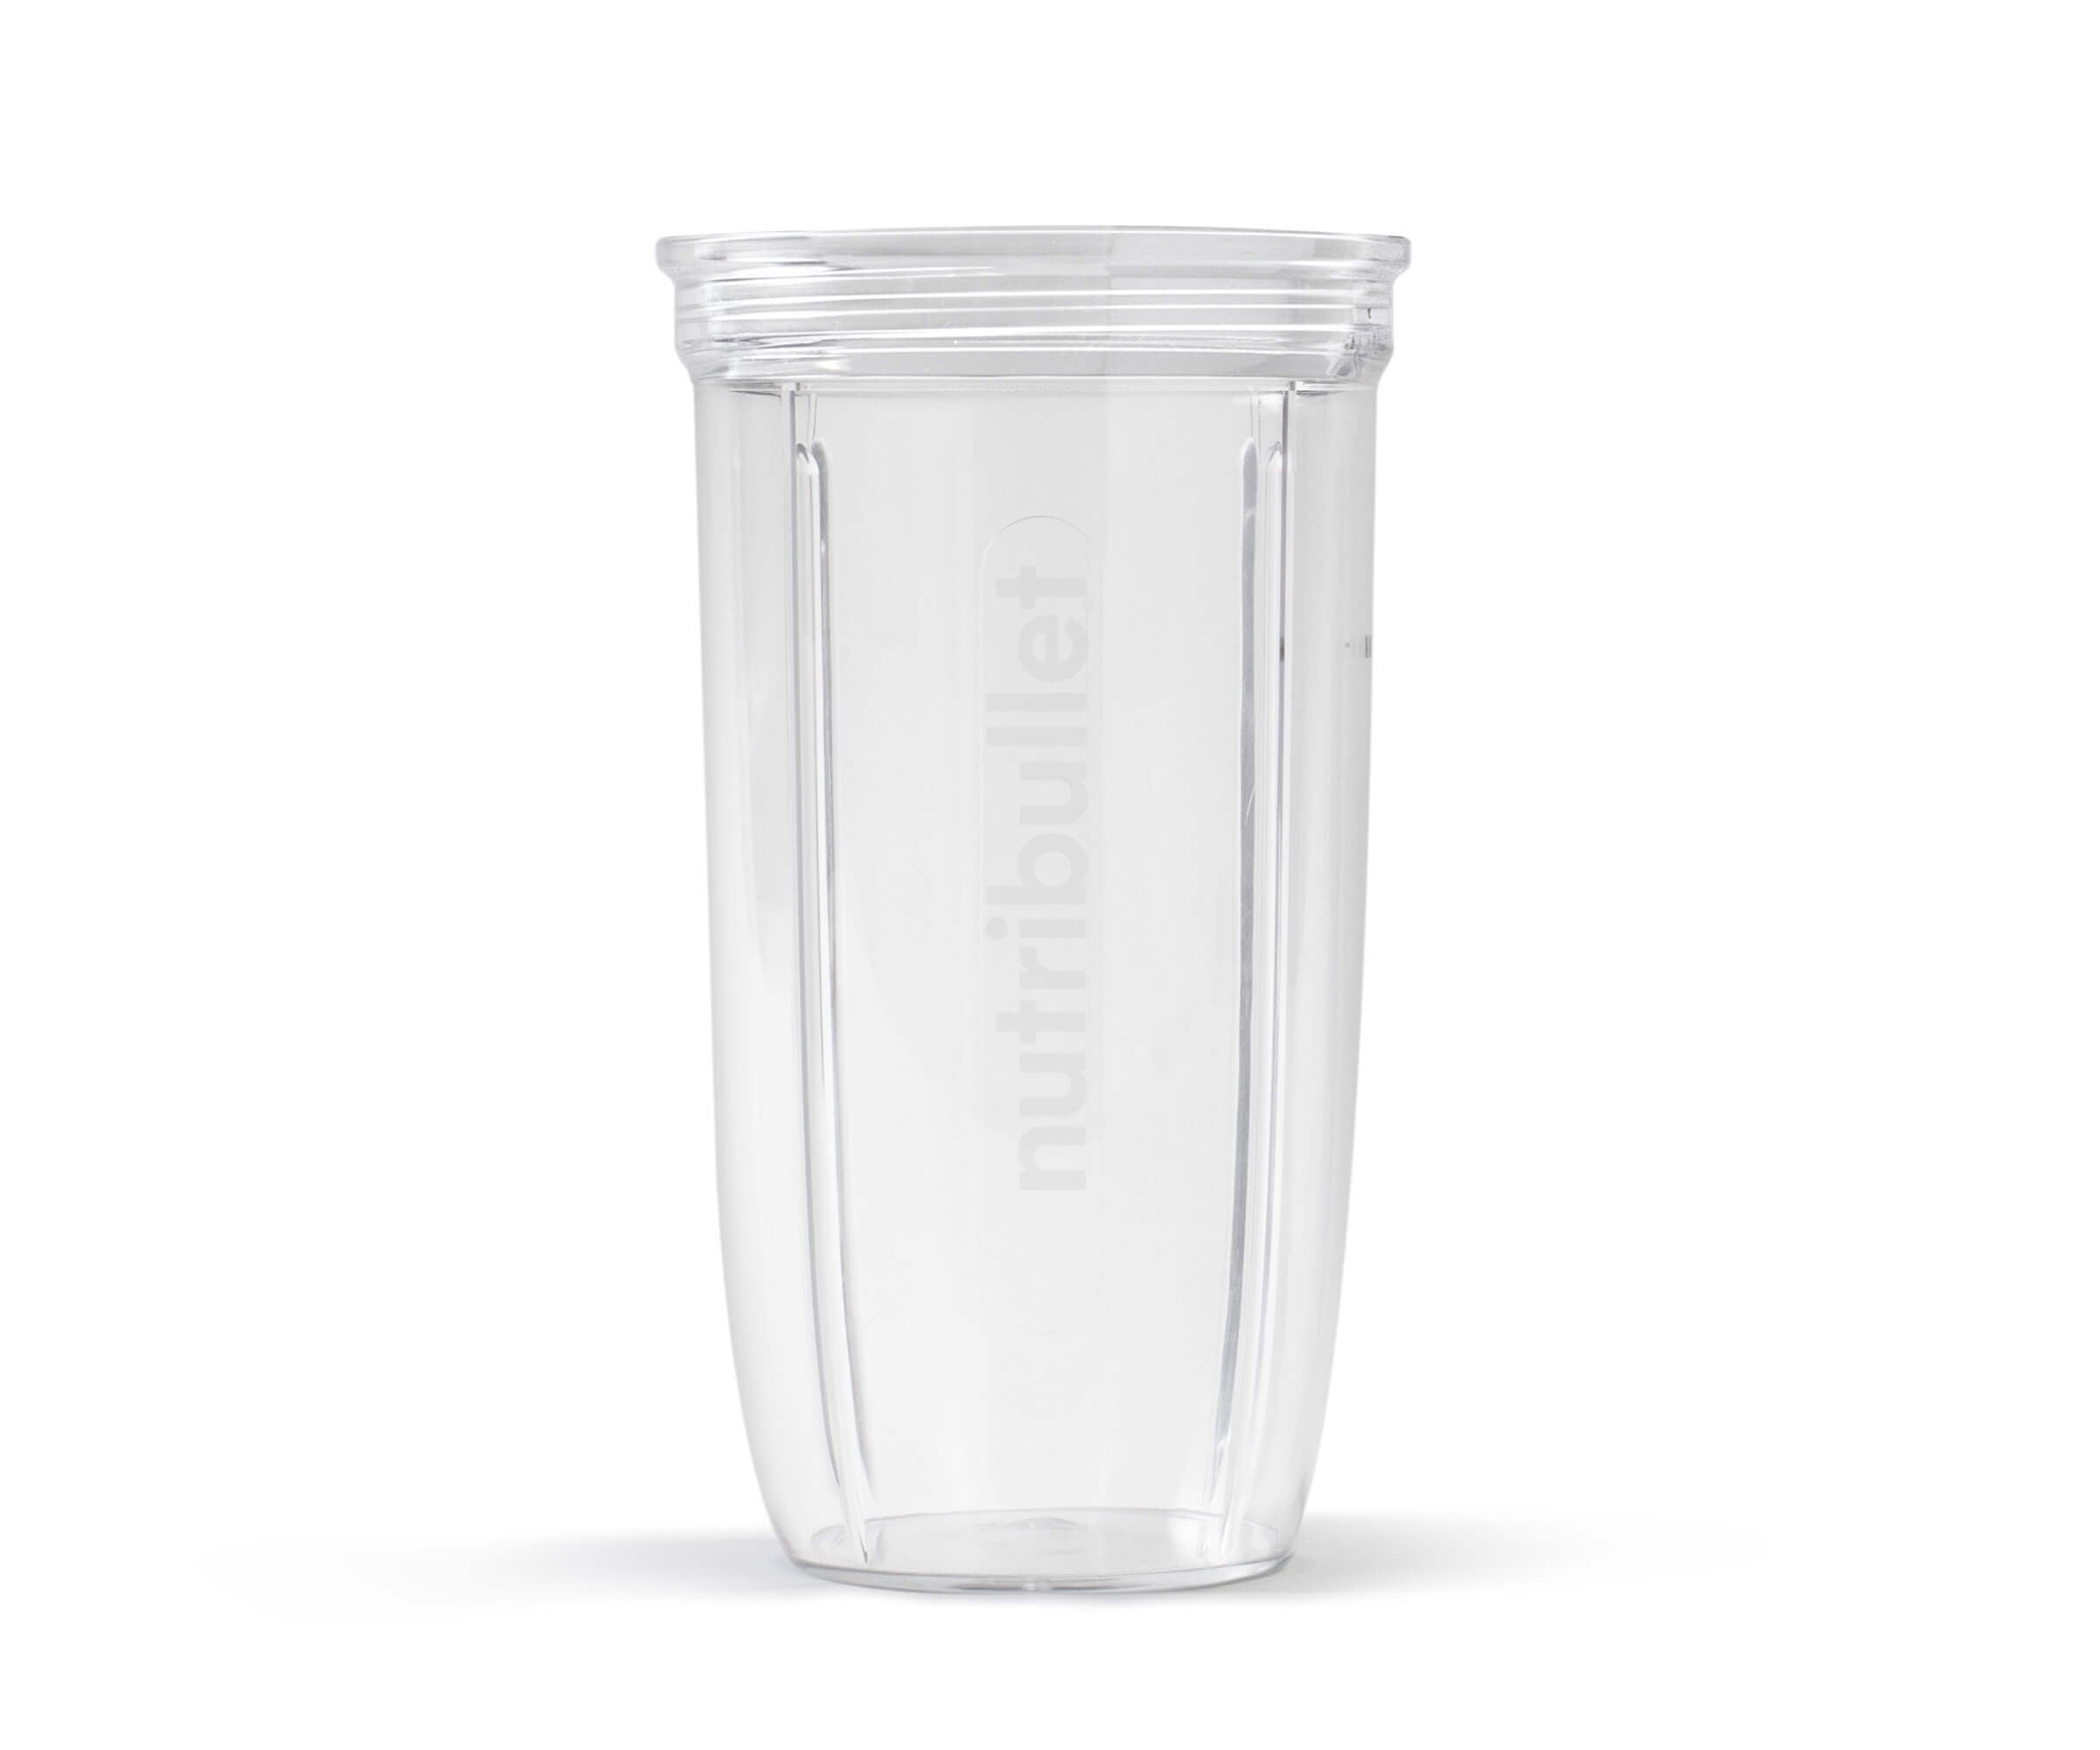 NutriBullet Blender 24oz (700ml) Tall Cup